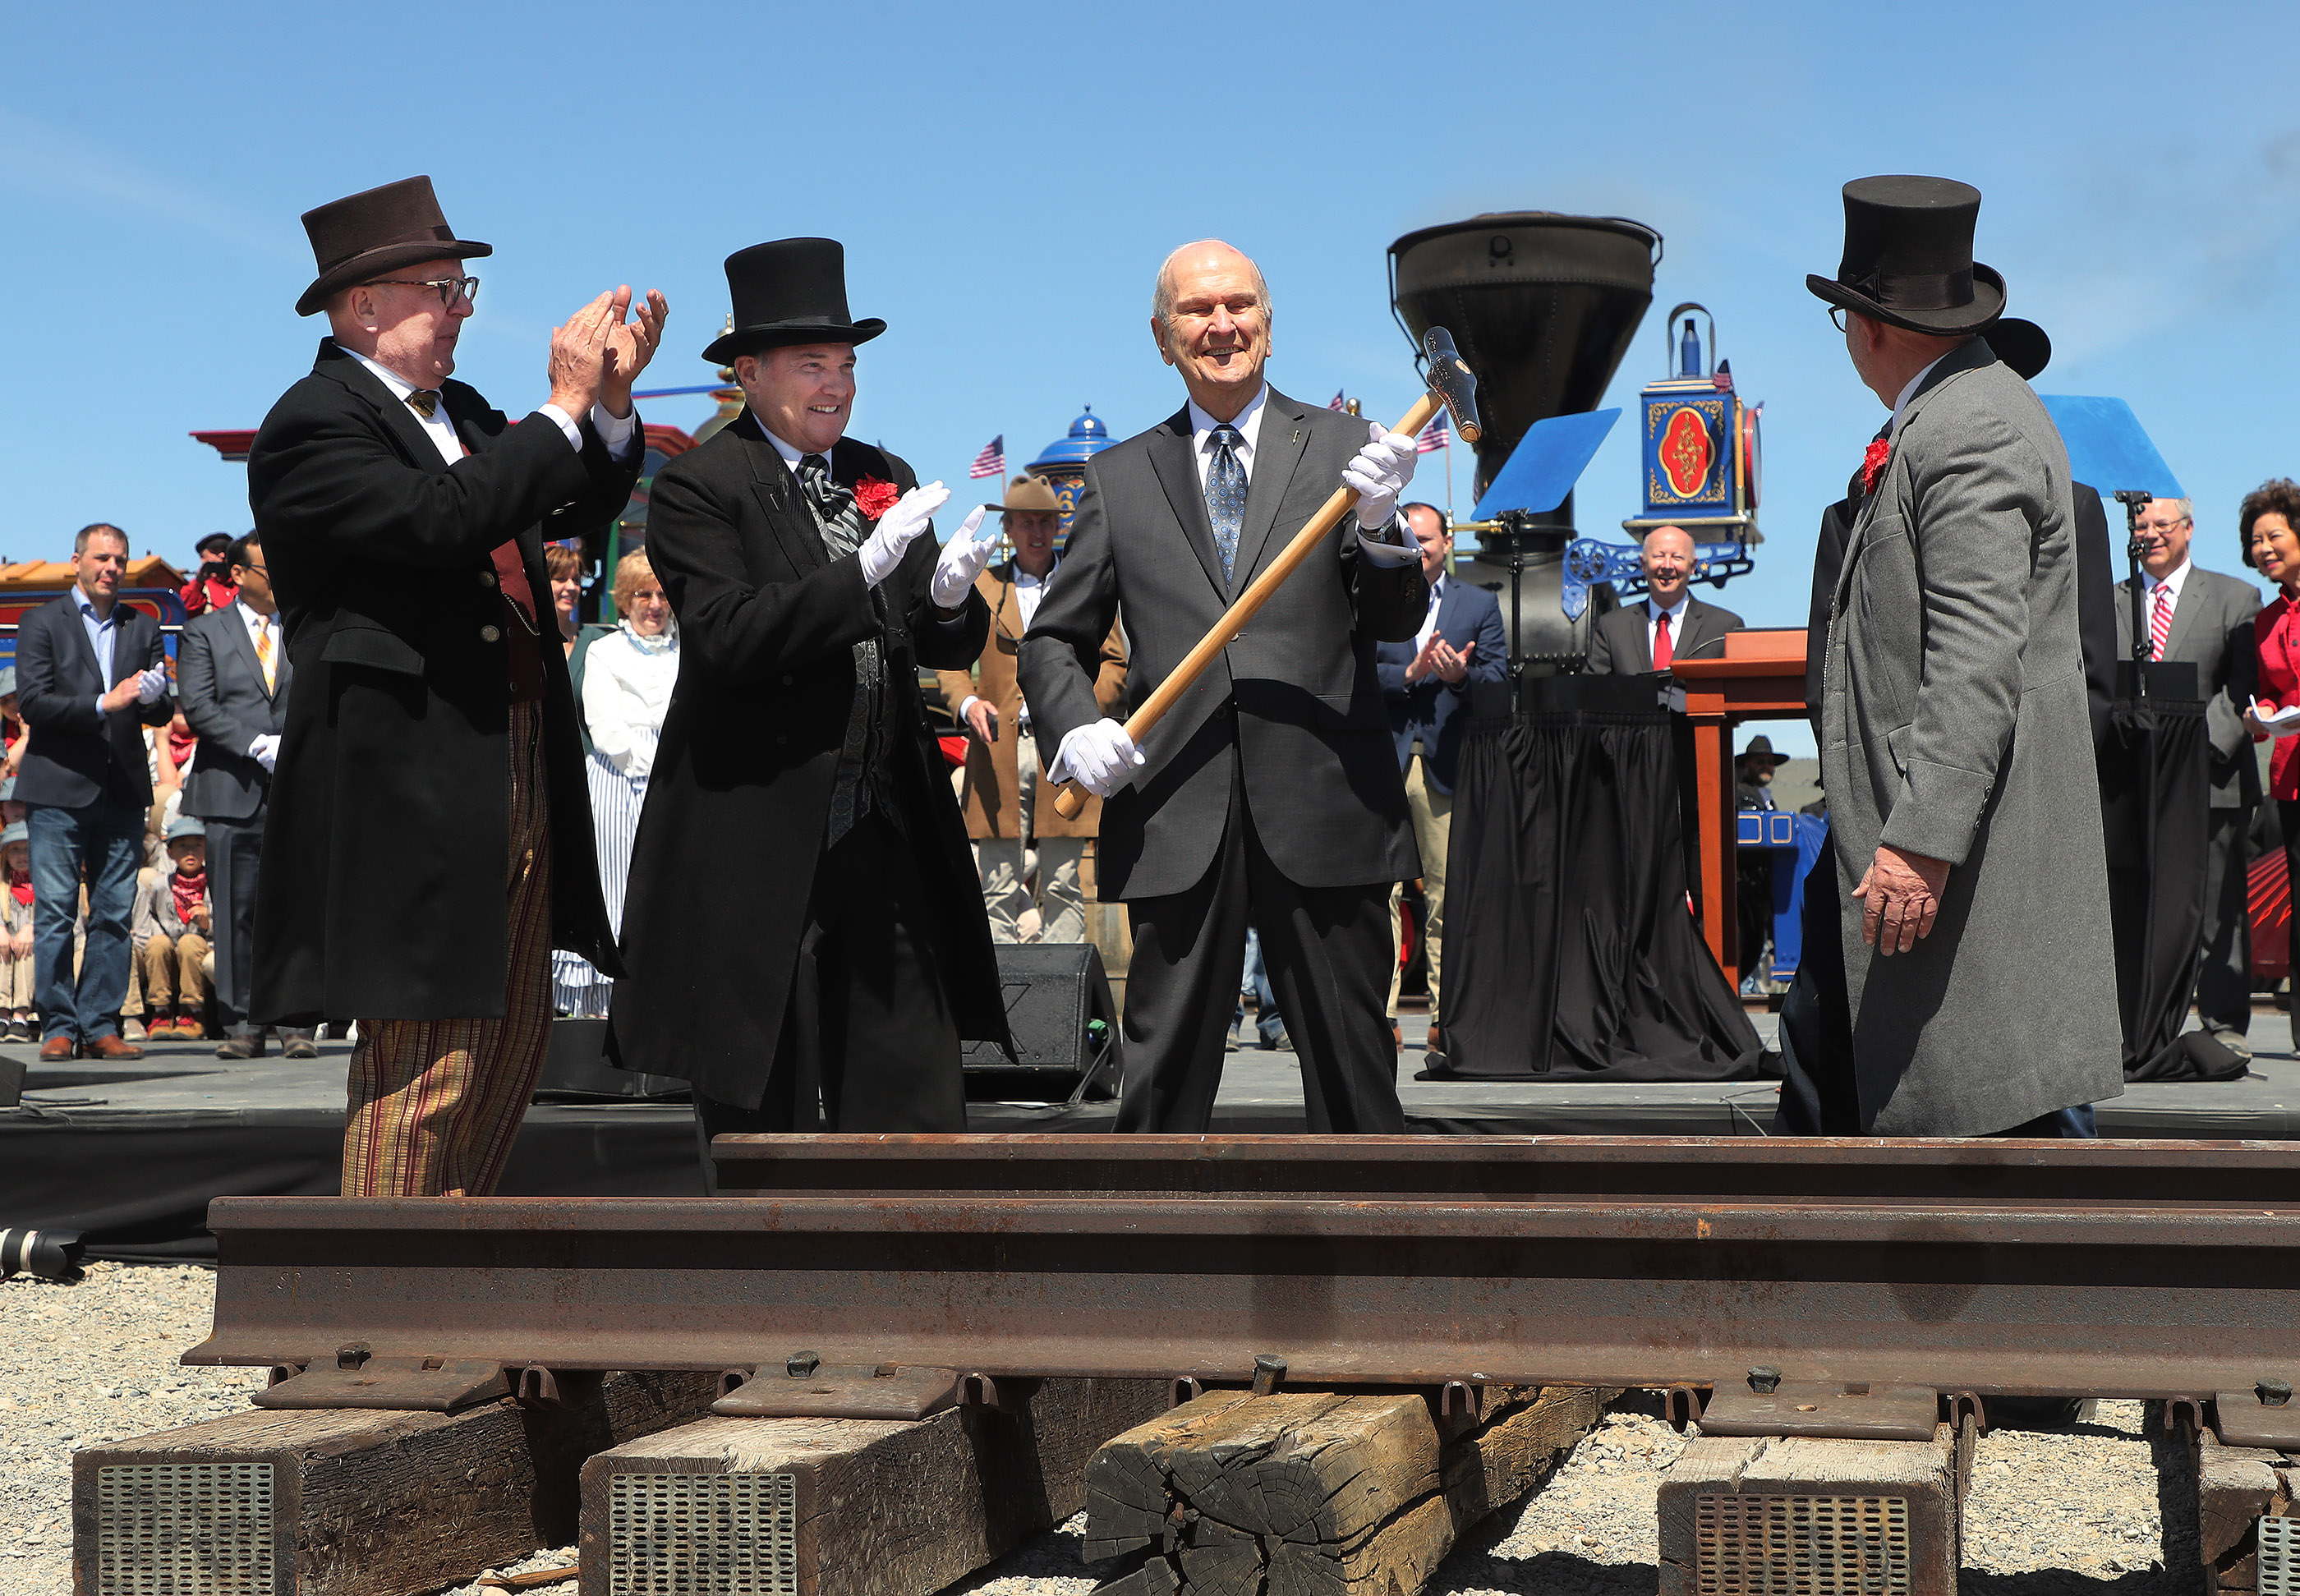 President Russell M. Nelson of The Church of Jesus Christ of Latter-day Saints, center, hoists his hammer after driving a golden spike during the 150th anniversary celebration of the transcontinental railroad at the Golden Spike National Historical Park at Promontory Summit on Friday, May 10, 2019.